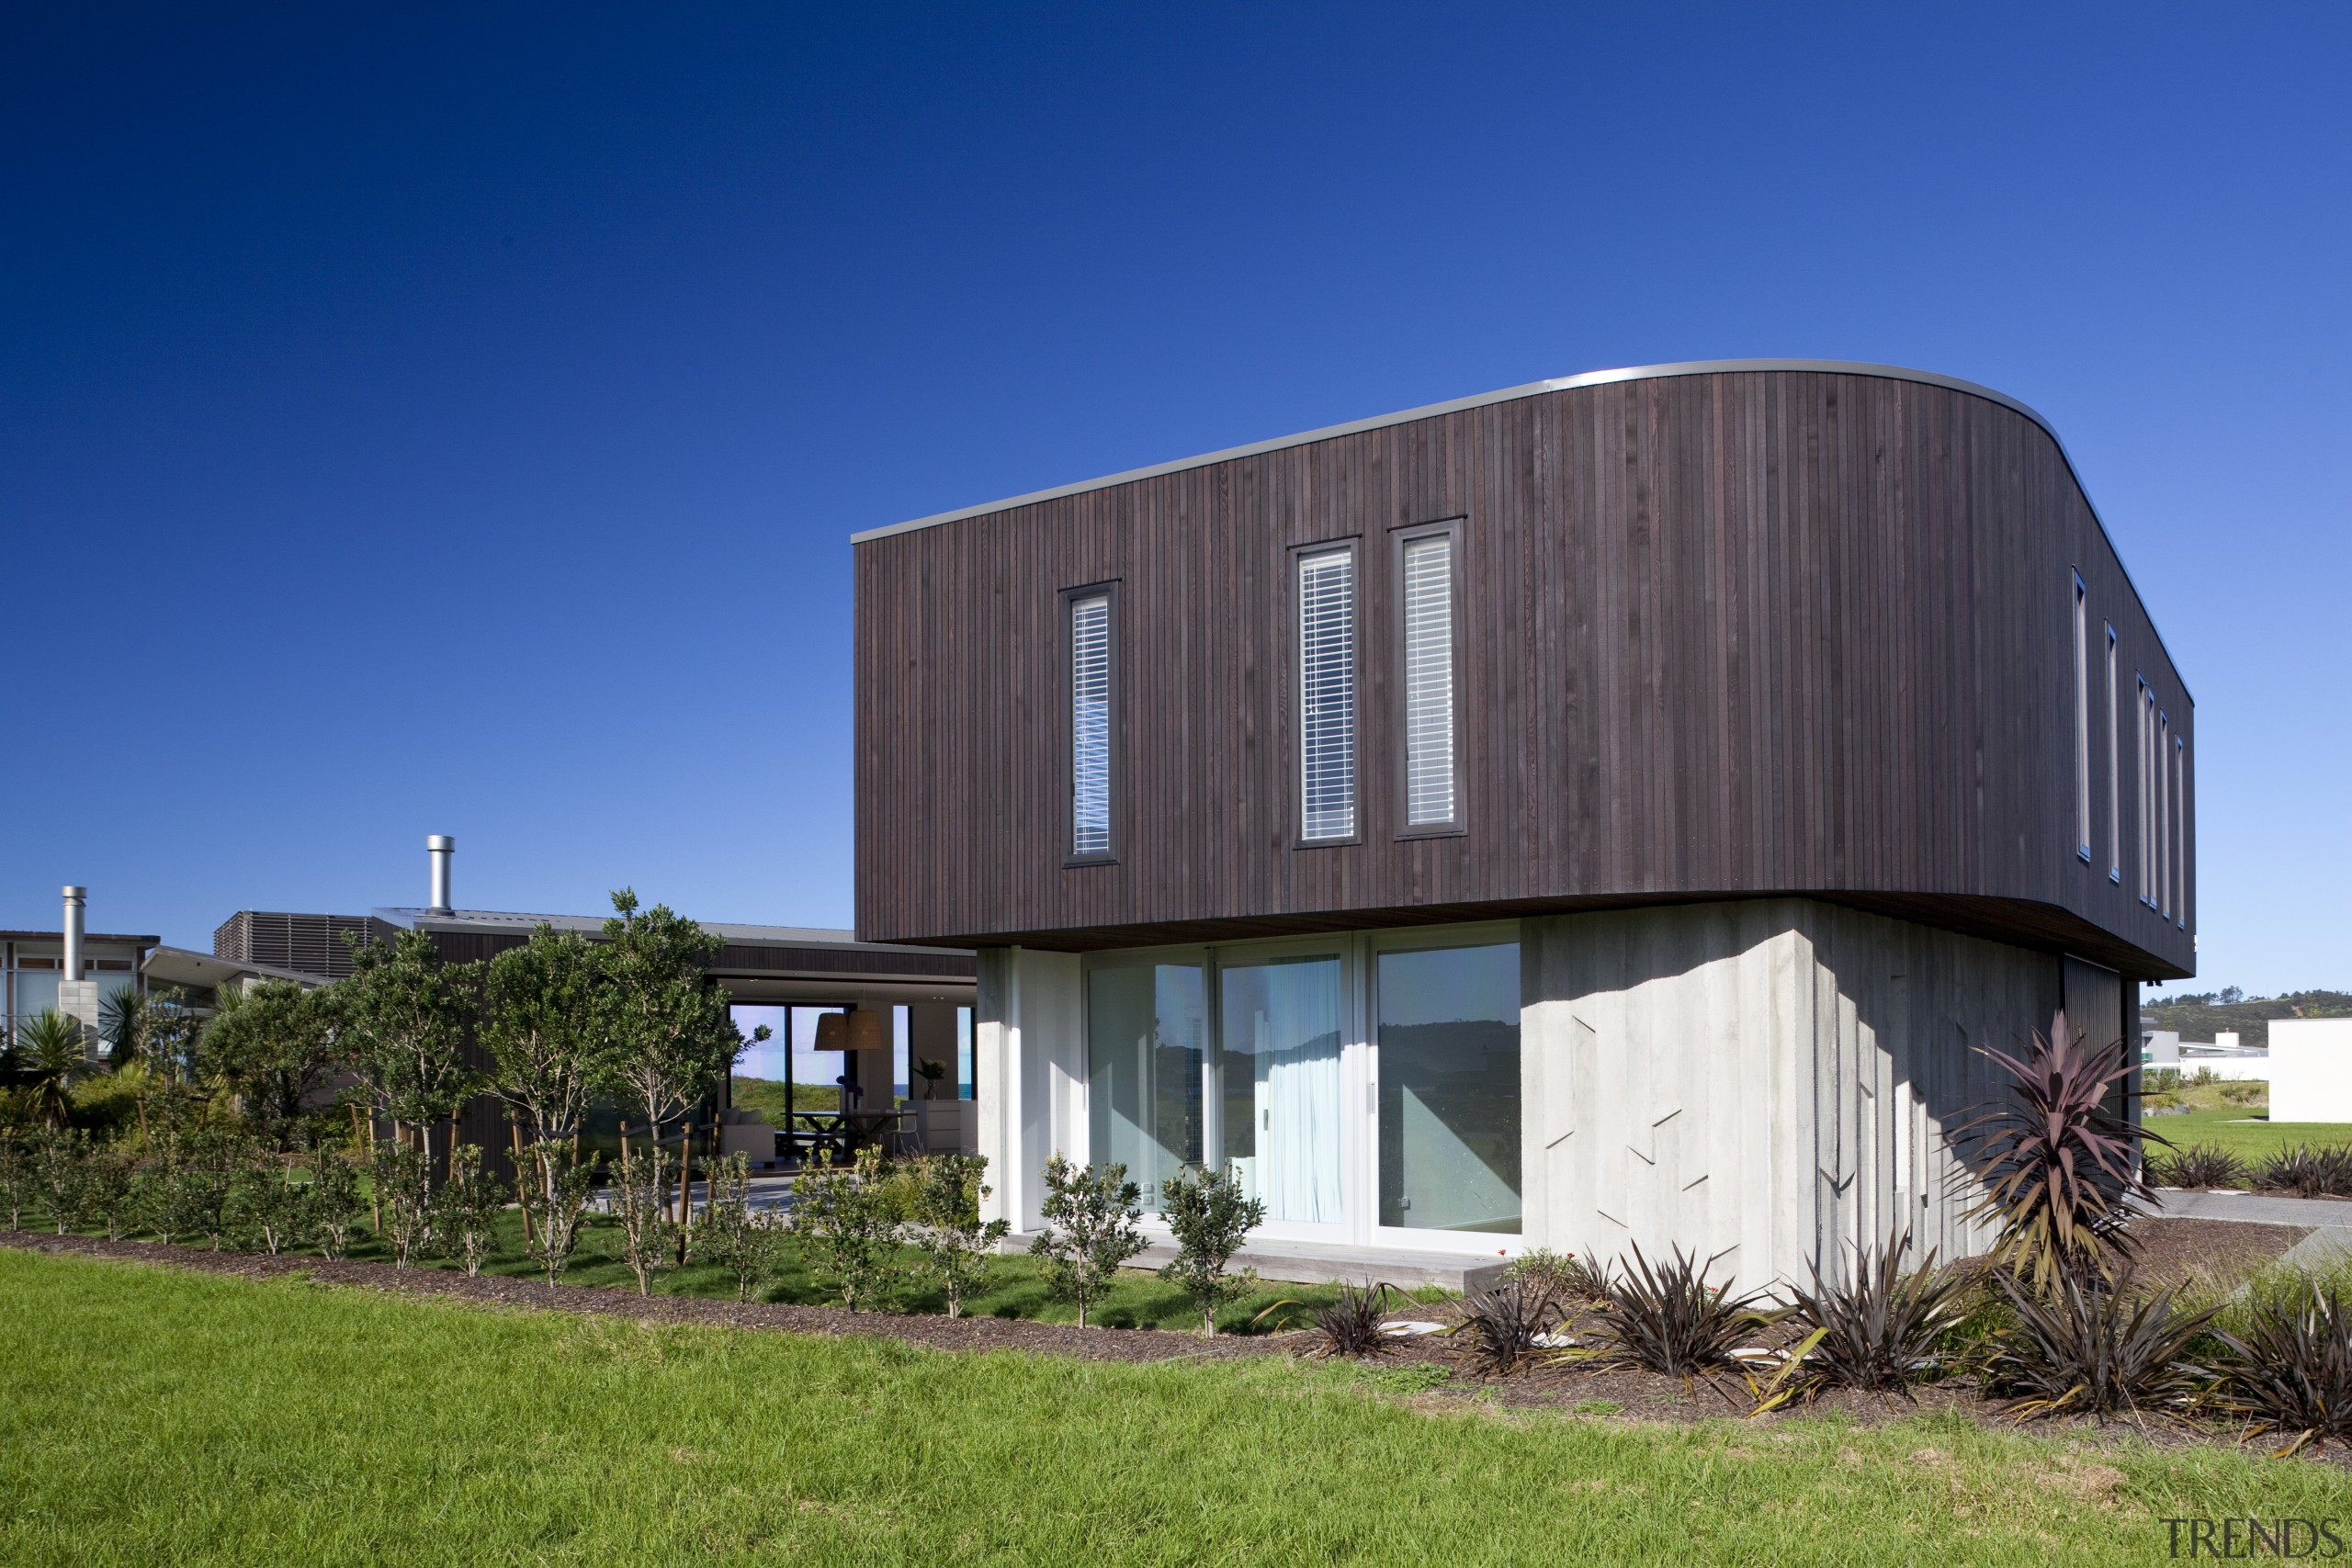 Ponting Fitzgerald-designed beach house - Ponting Fitzgerald-designed beach architecture, building, corporate headquarters, facade, home, house, real estate, residential area, sky, blue